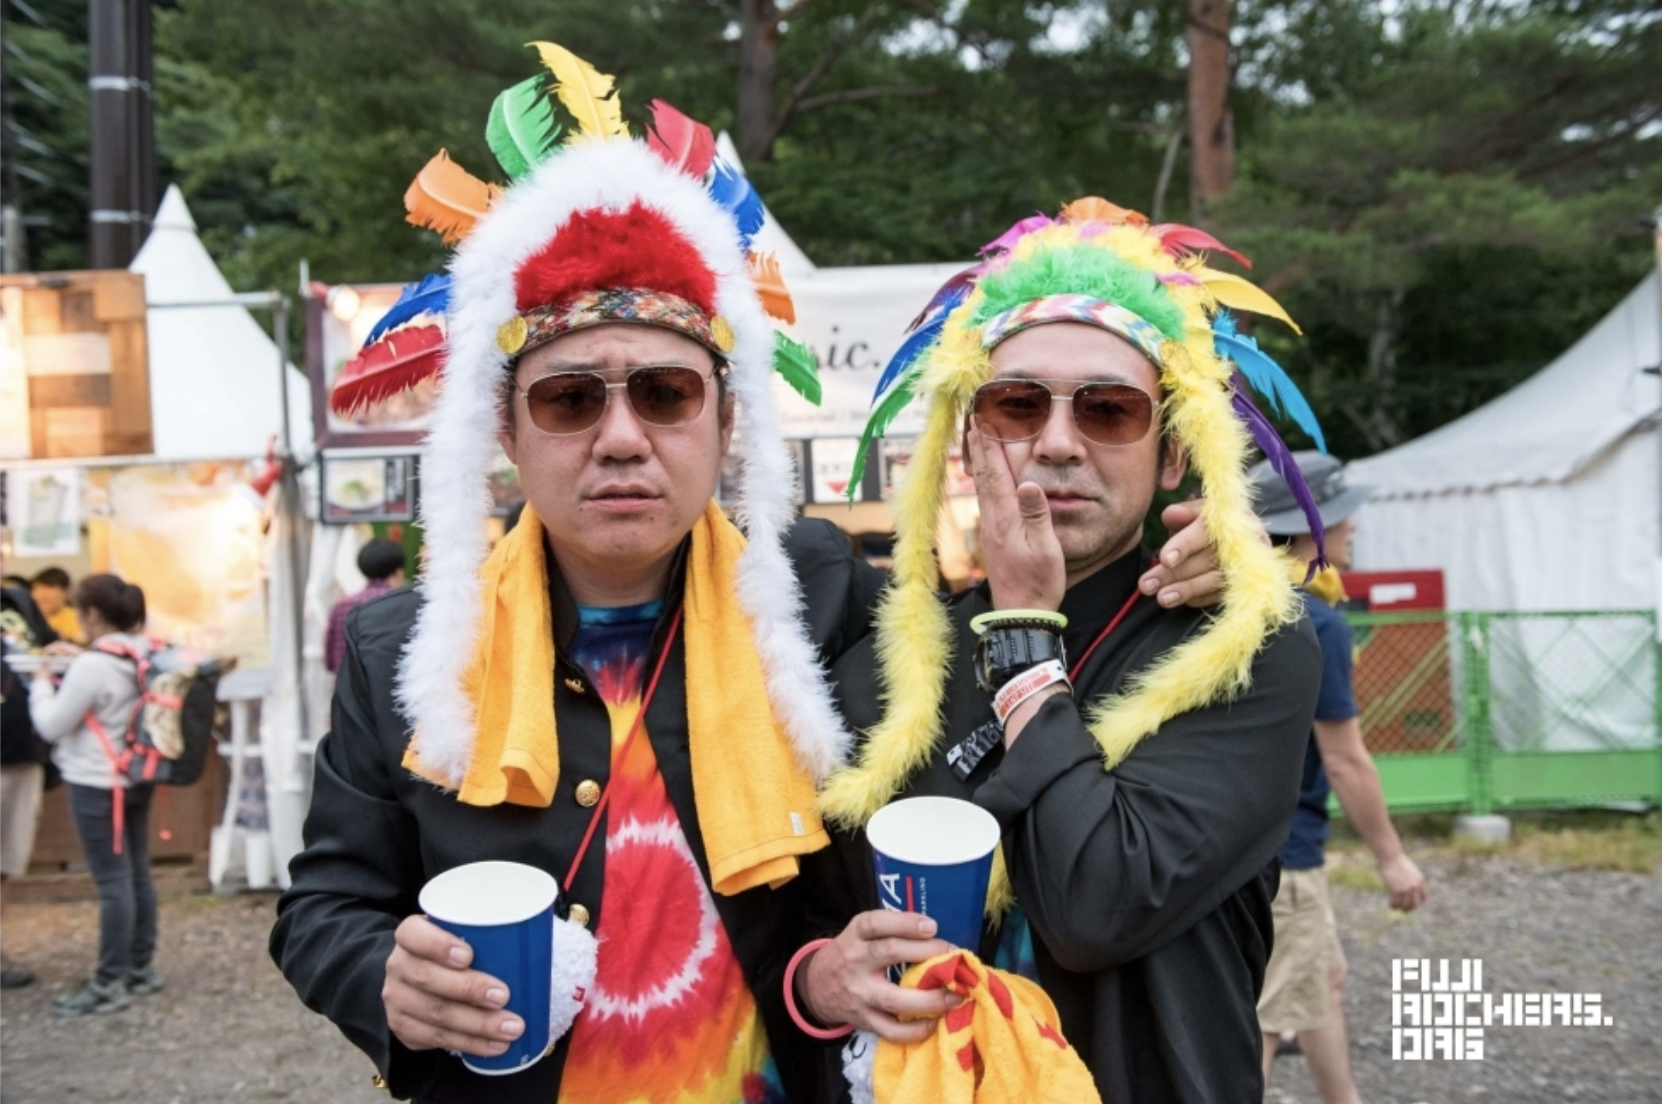 The Complete Guide To Not Being A Problematic Fuji Rock Participant